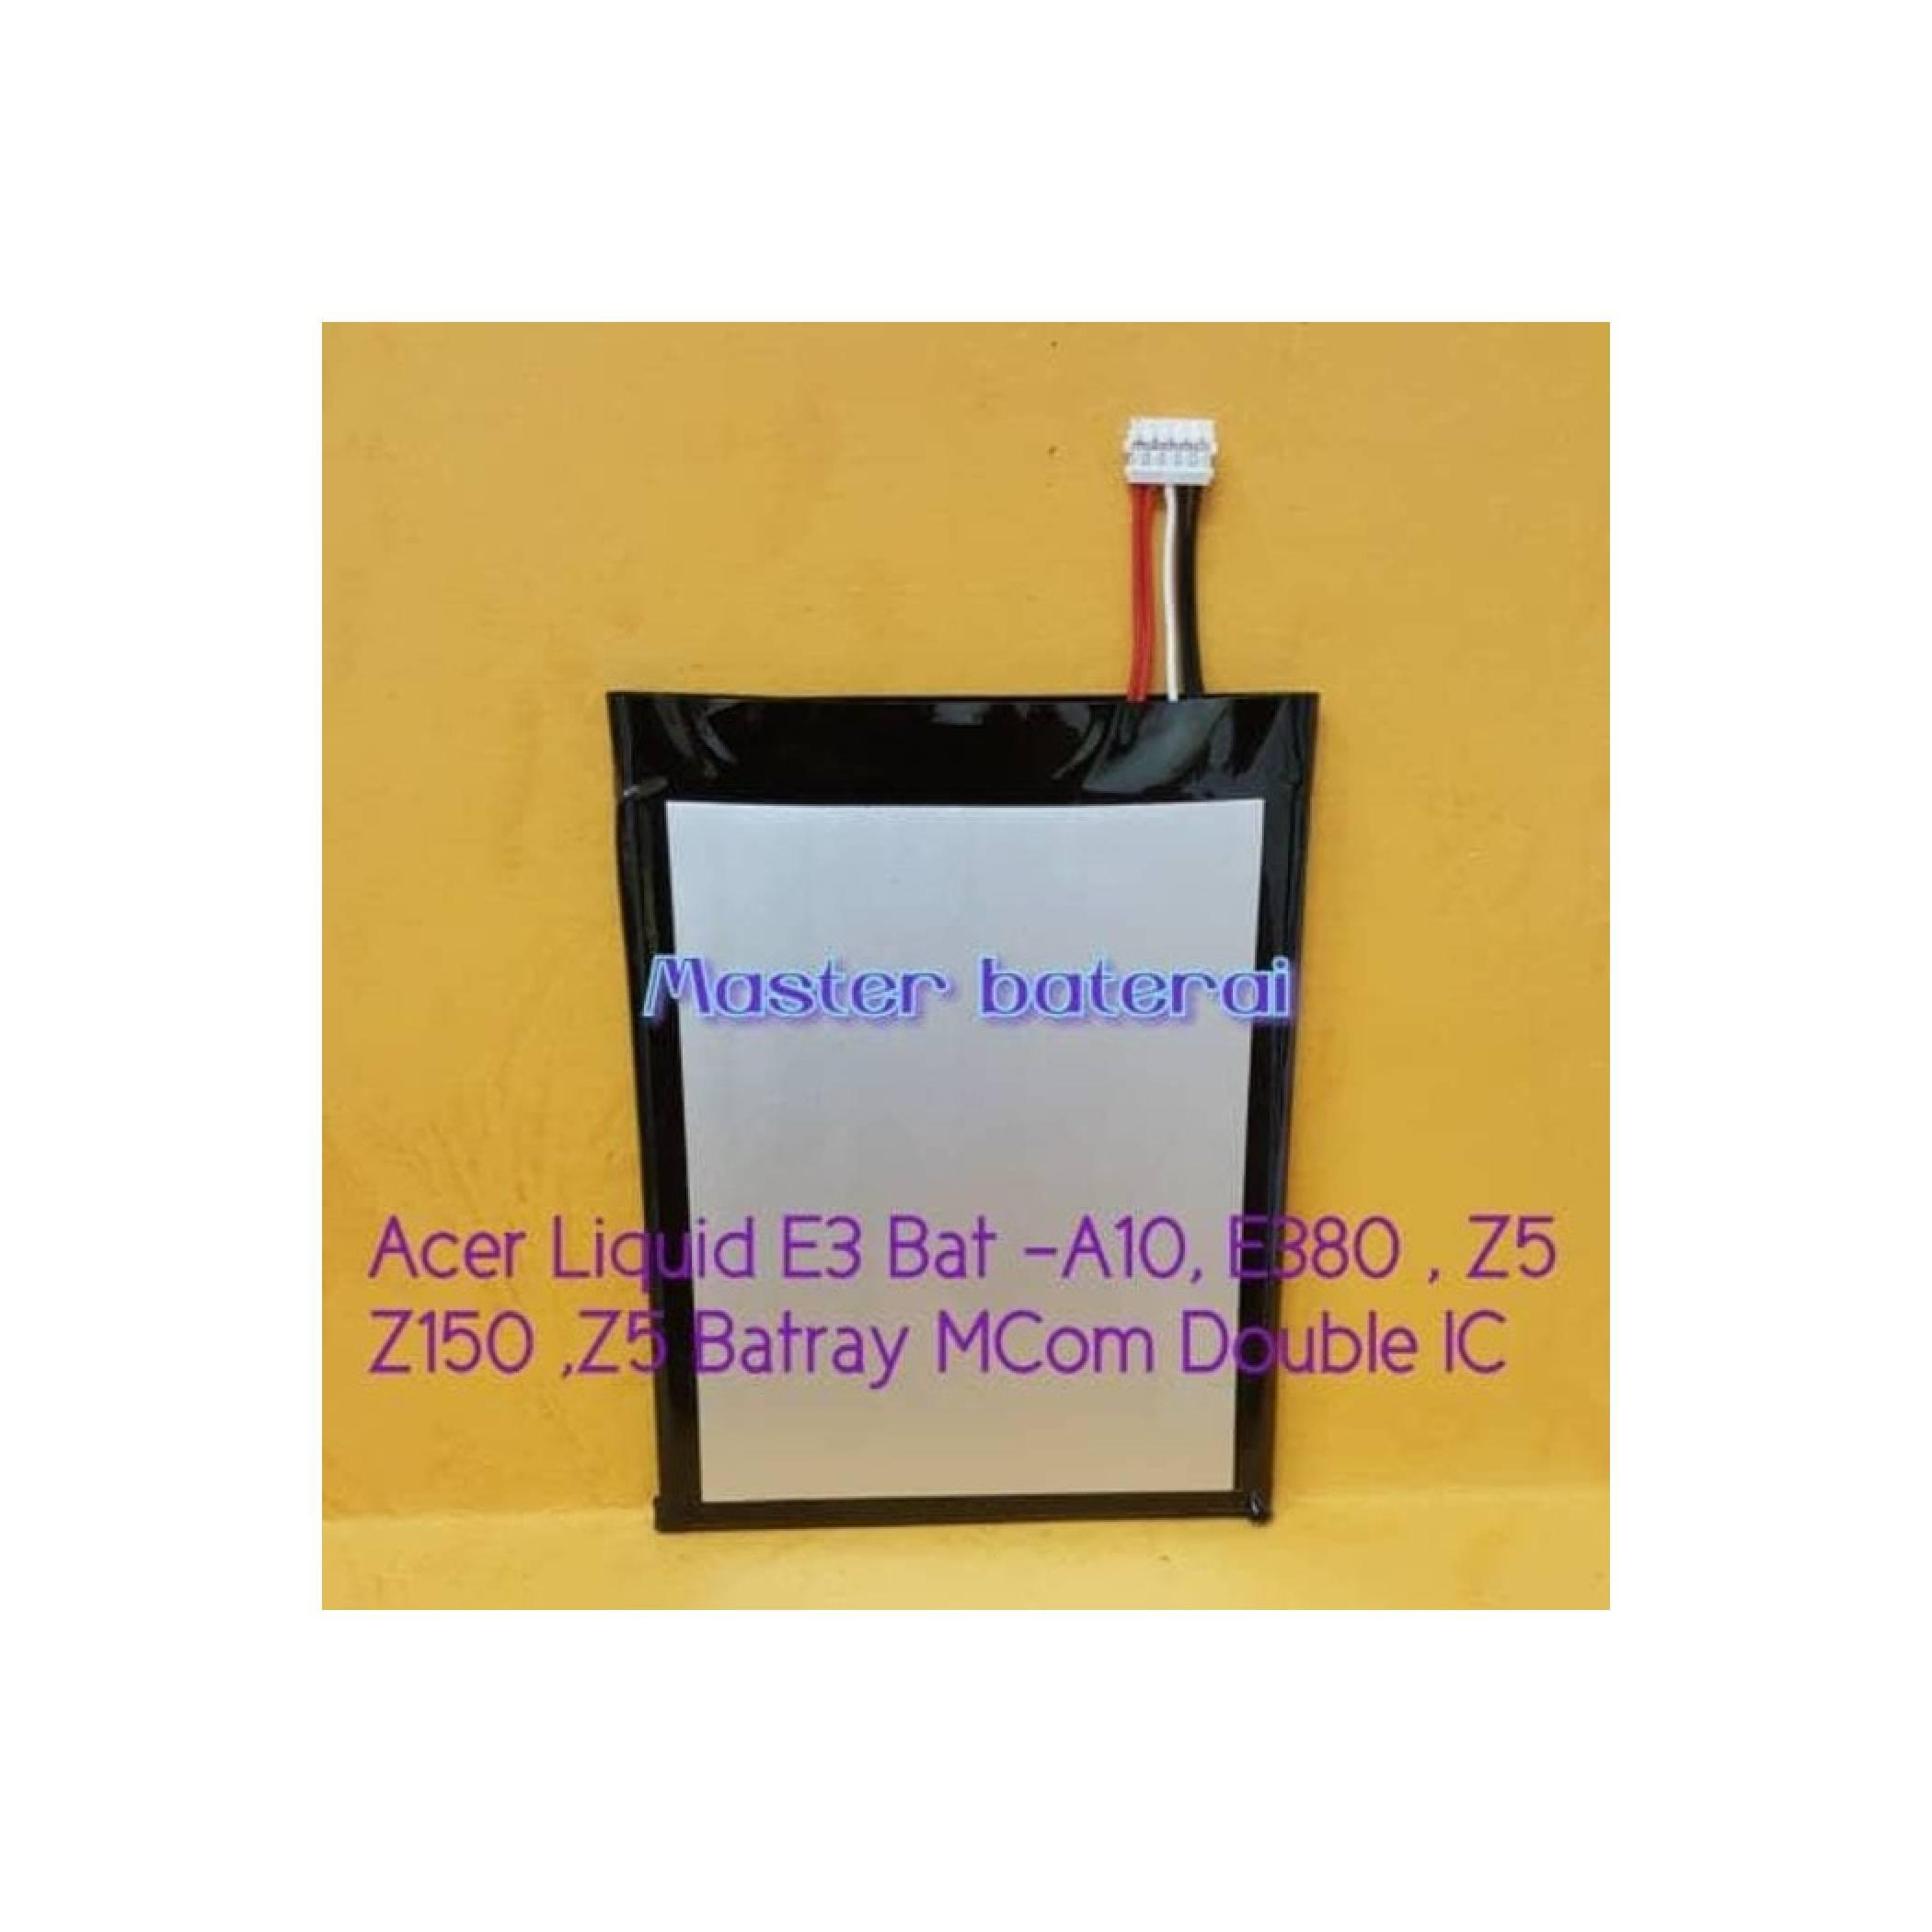 Baterai Acer Liquid E3 E380 Z5 Z150 Z500 Socket Double Power IC